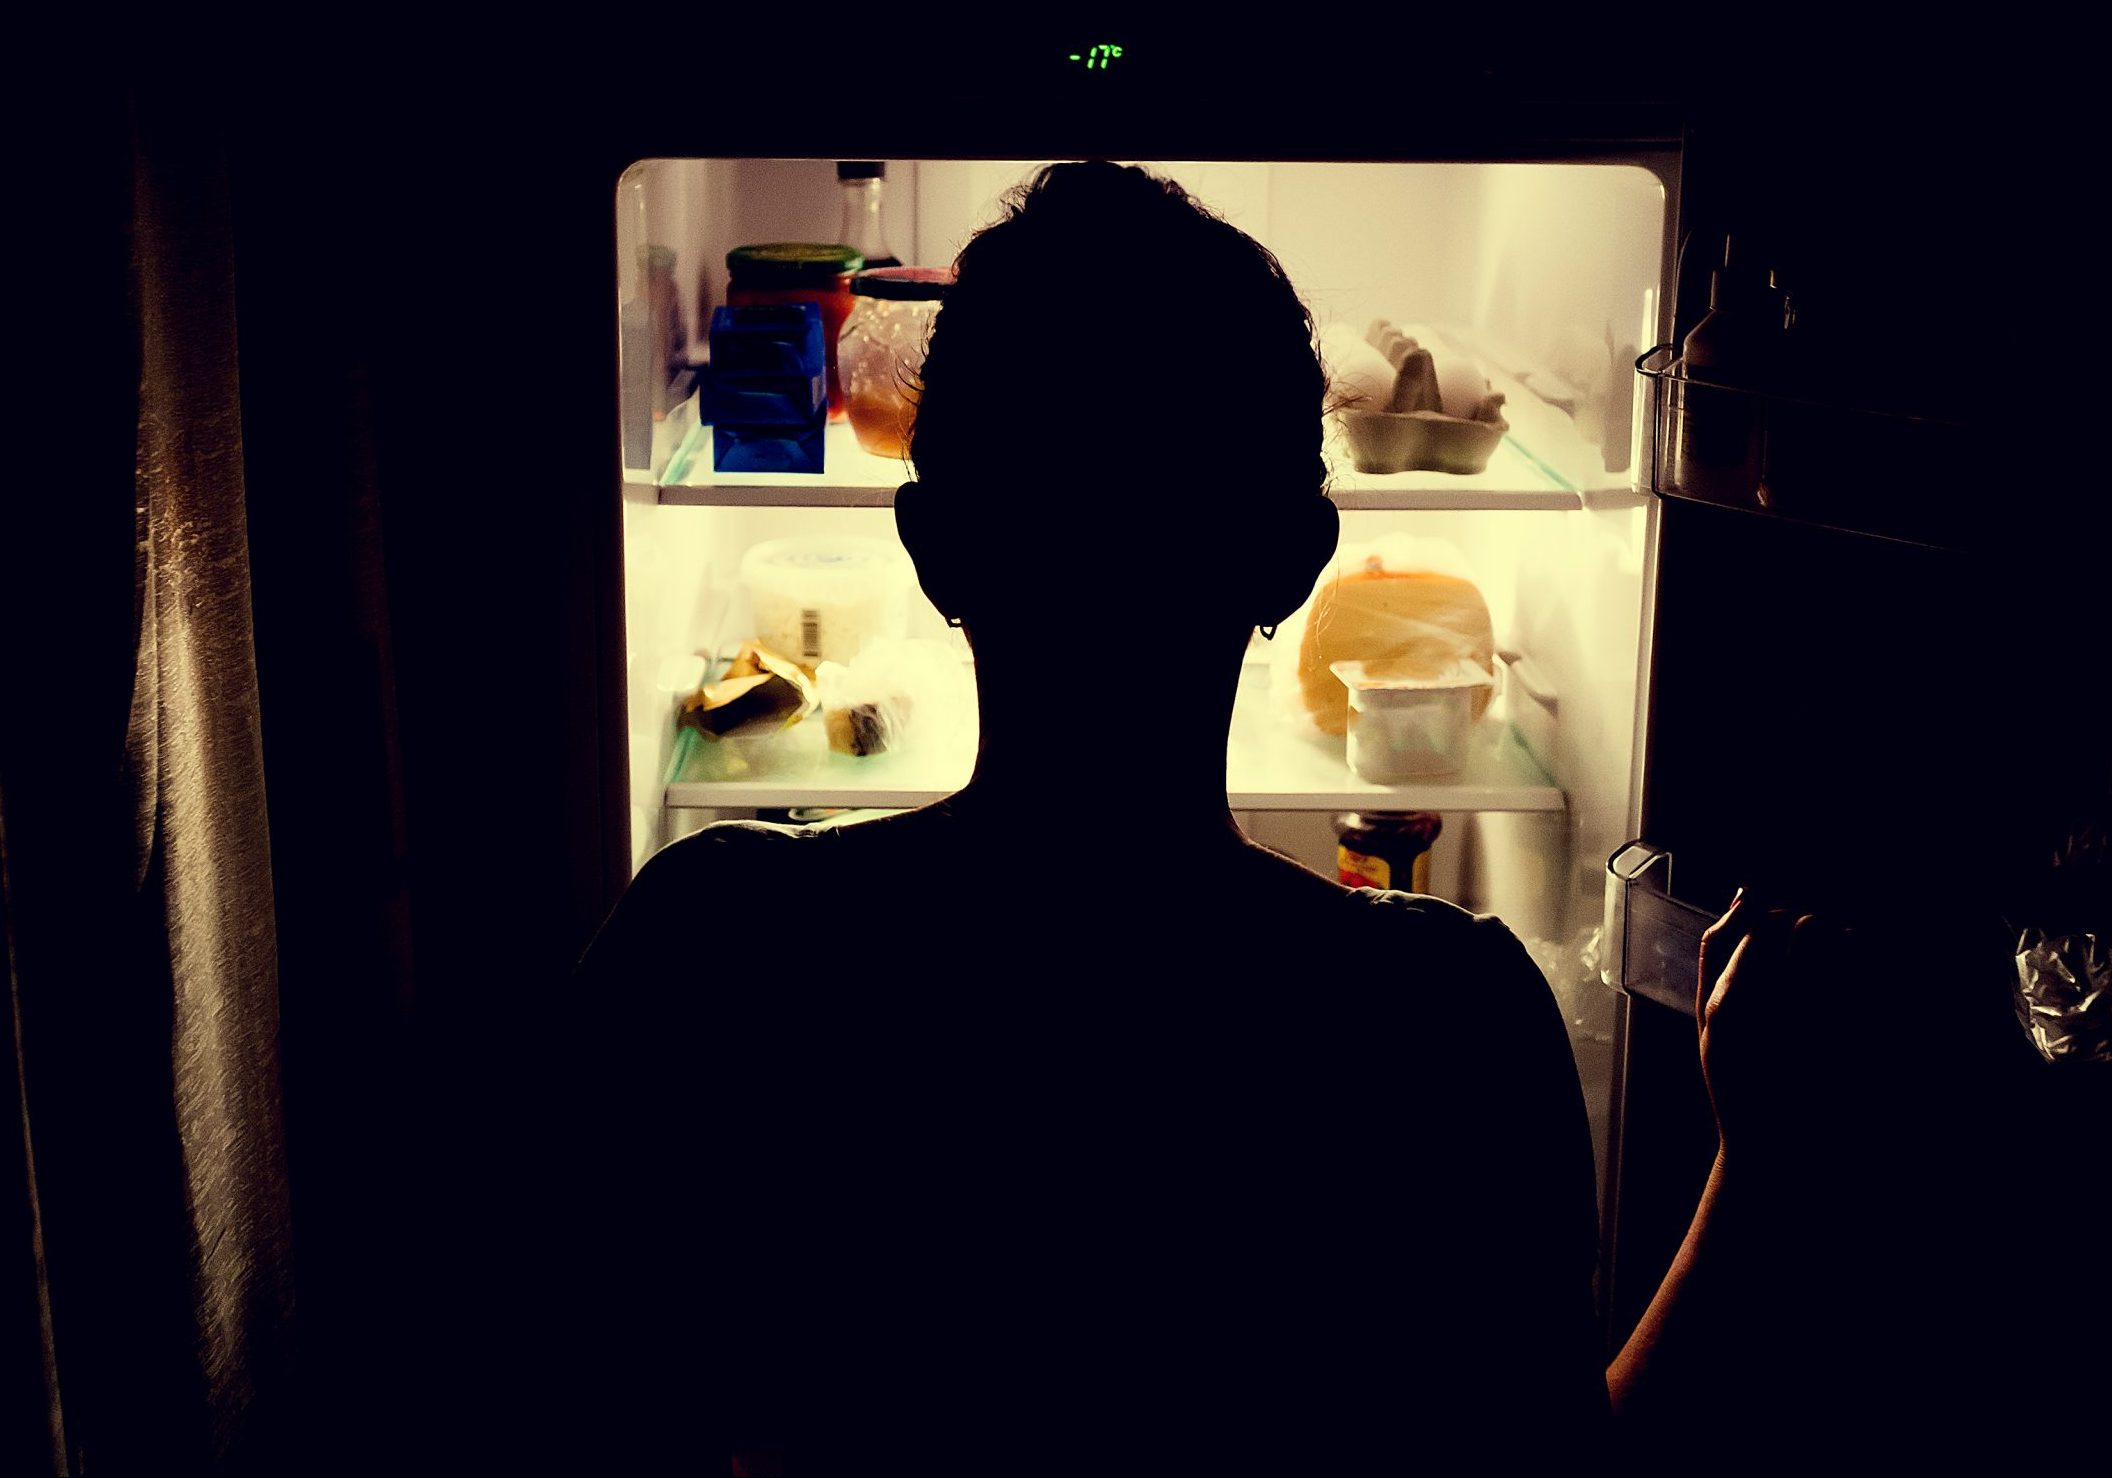 A sillhoutte of a person backlit by the light of a refrigerator, looking for something to eat